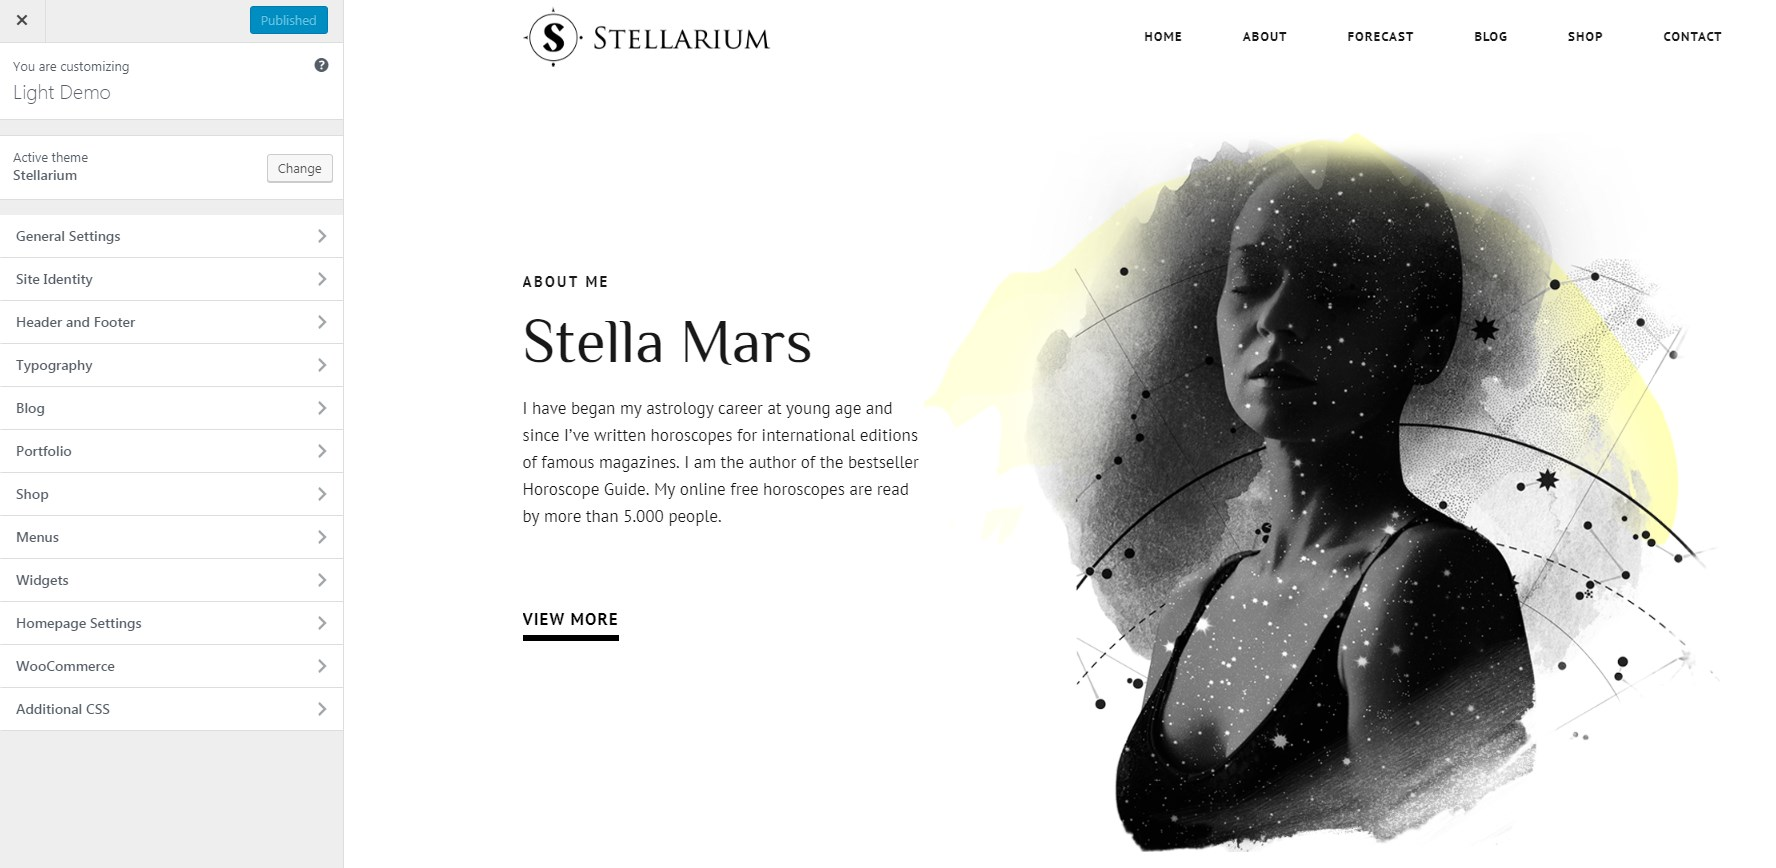 http://documentation.bold-themes.com/stellarium/wp-content/uploads/sites/34/2018/06/stellarium-customize-01.jpg